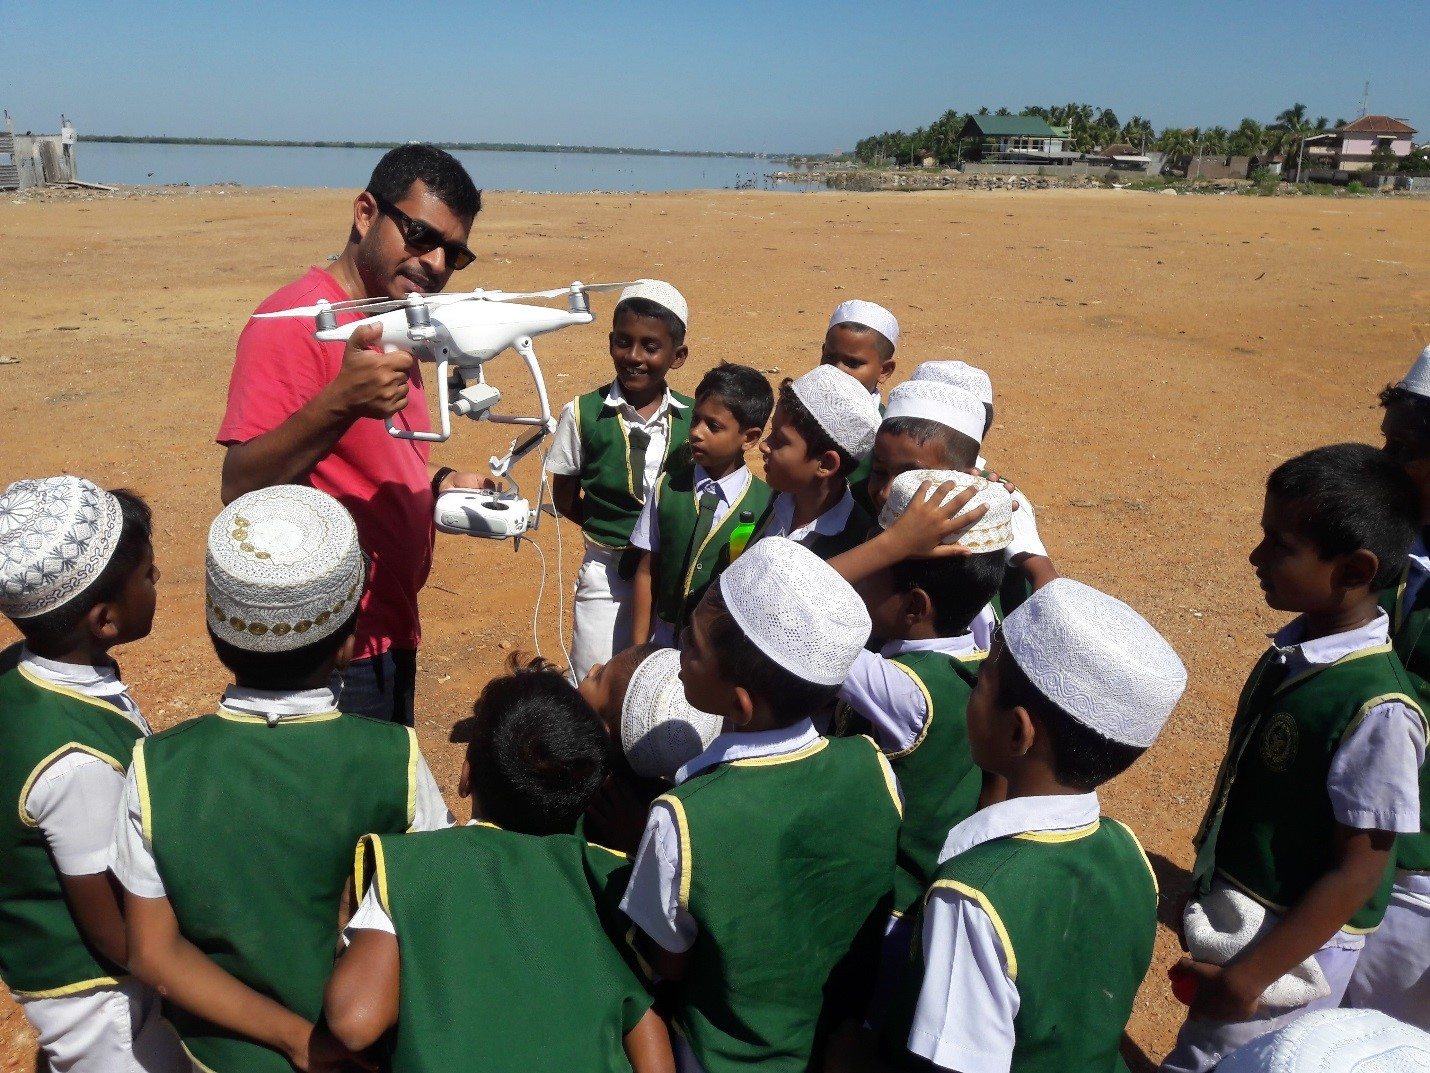 A man shows a group of school boys a drone